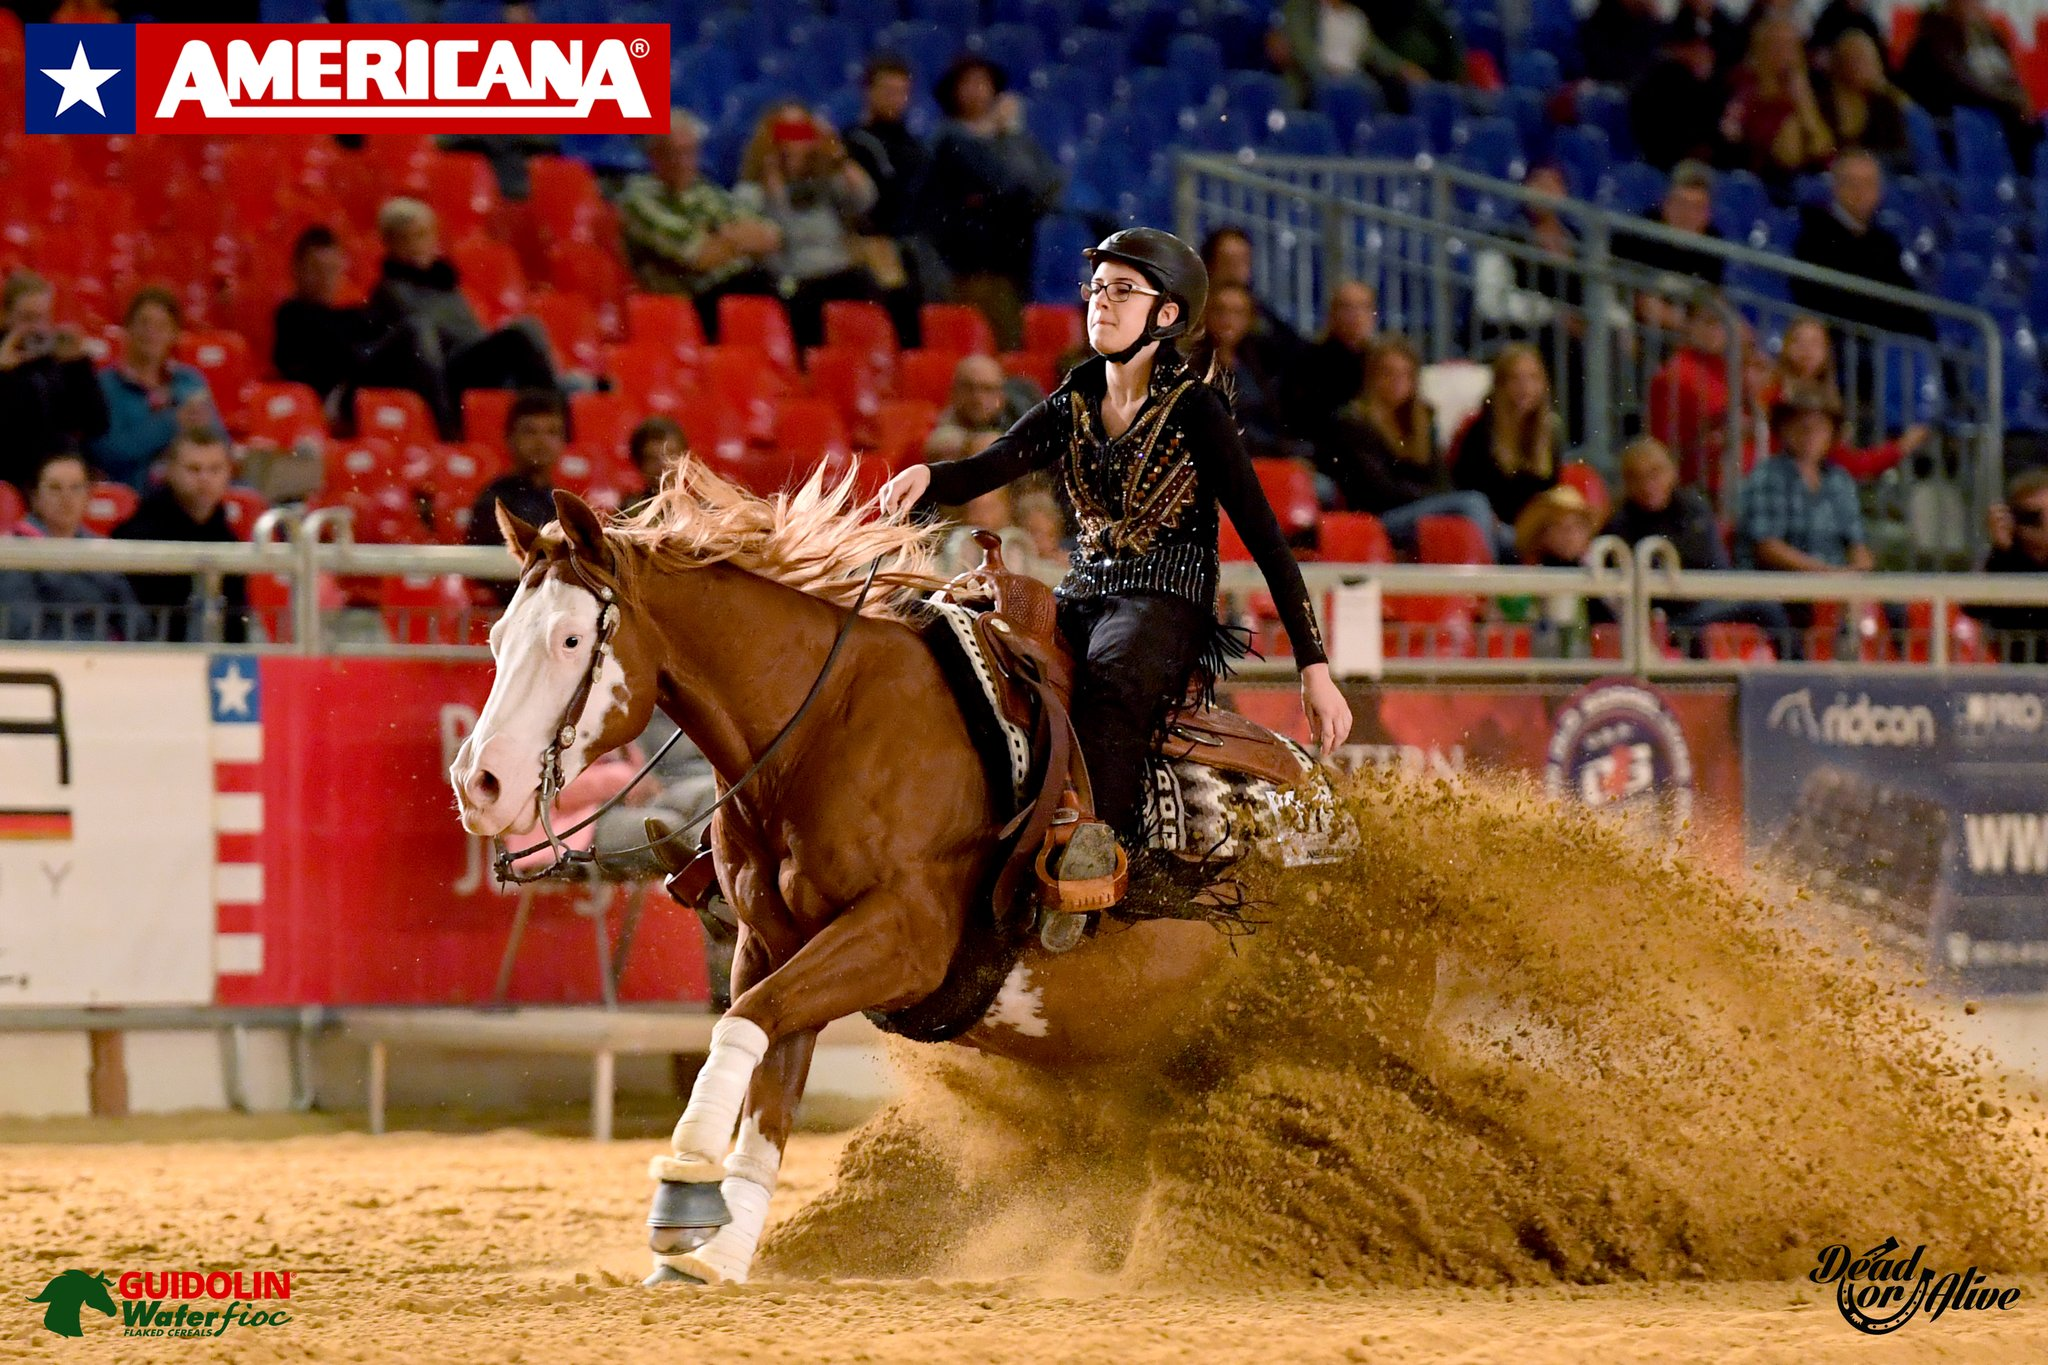 Americana Number 1 Western Horse Show In Europe